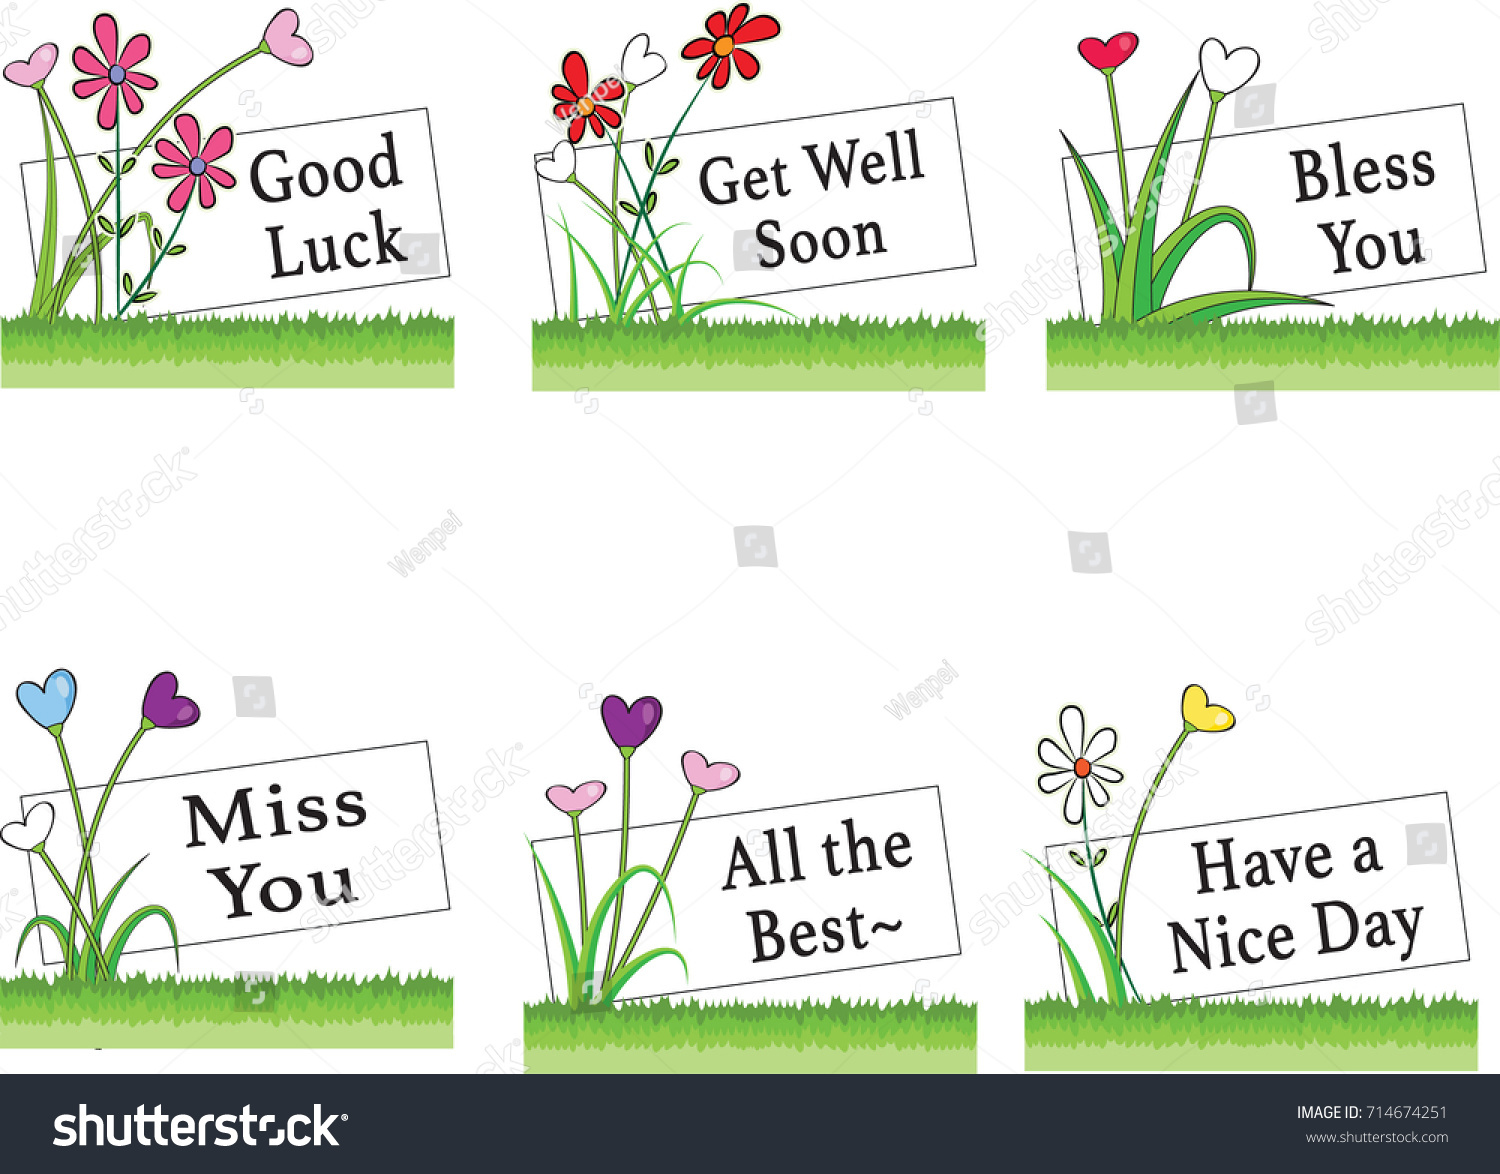 Flowers greeting card border stock vector 714674251 shutterstock flowers and greeting card border kristyandbryce Choice Image